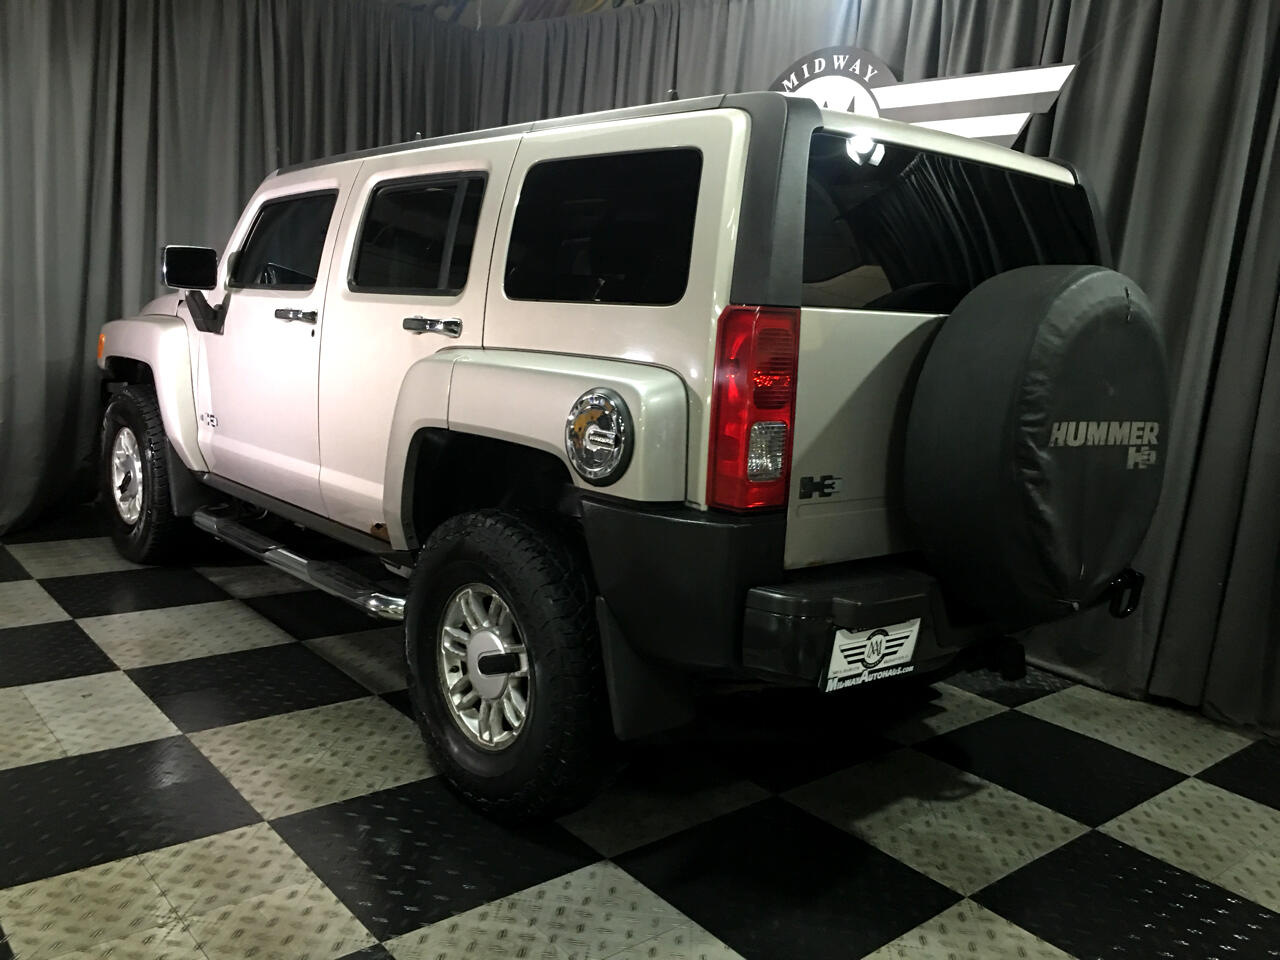 Pre-Owned 2006 HUMMER H3 4dr 4WD SUV